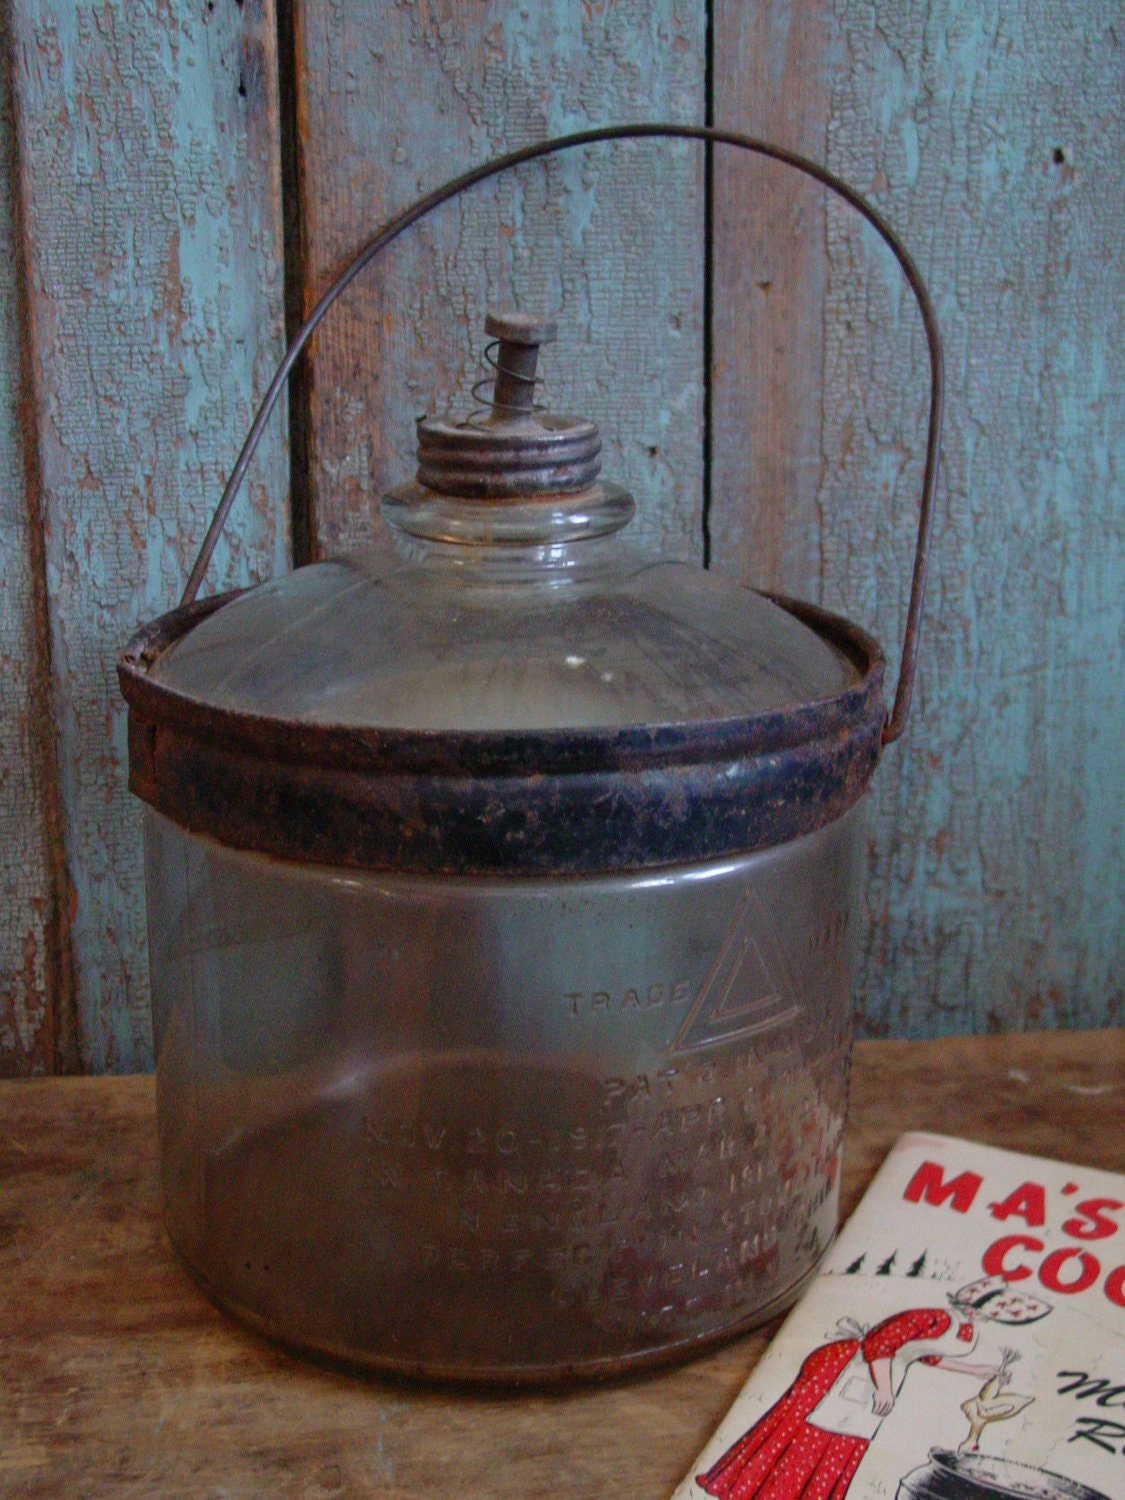 Kerosene cook stove - Instappraisal | Free Antique, Collectible